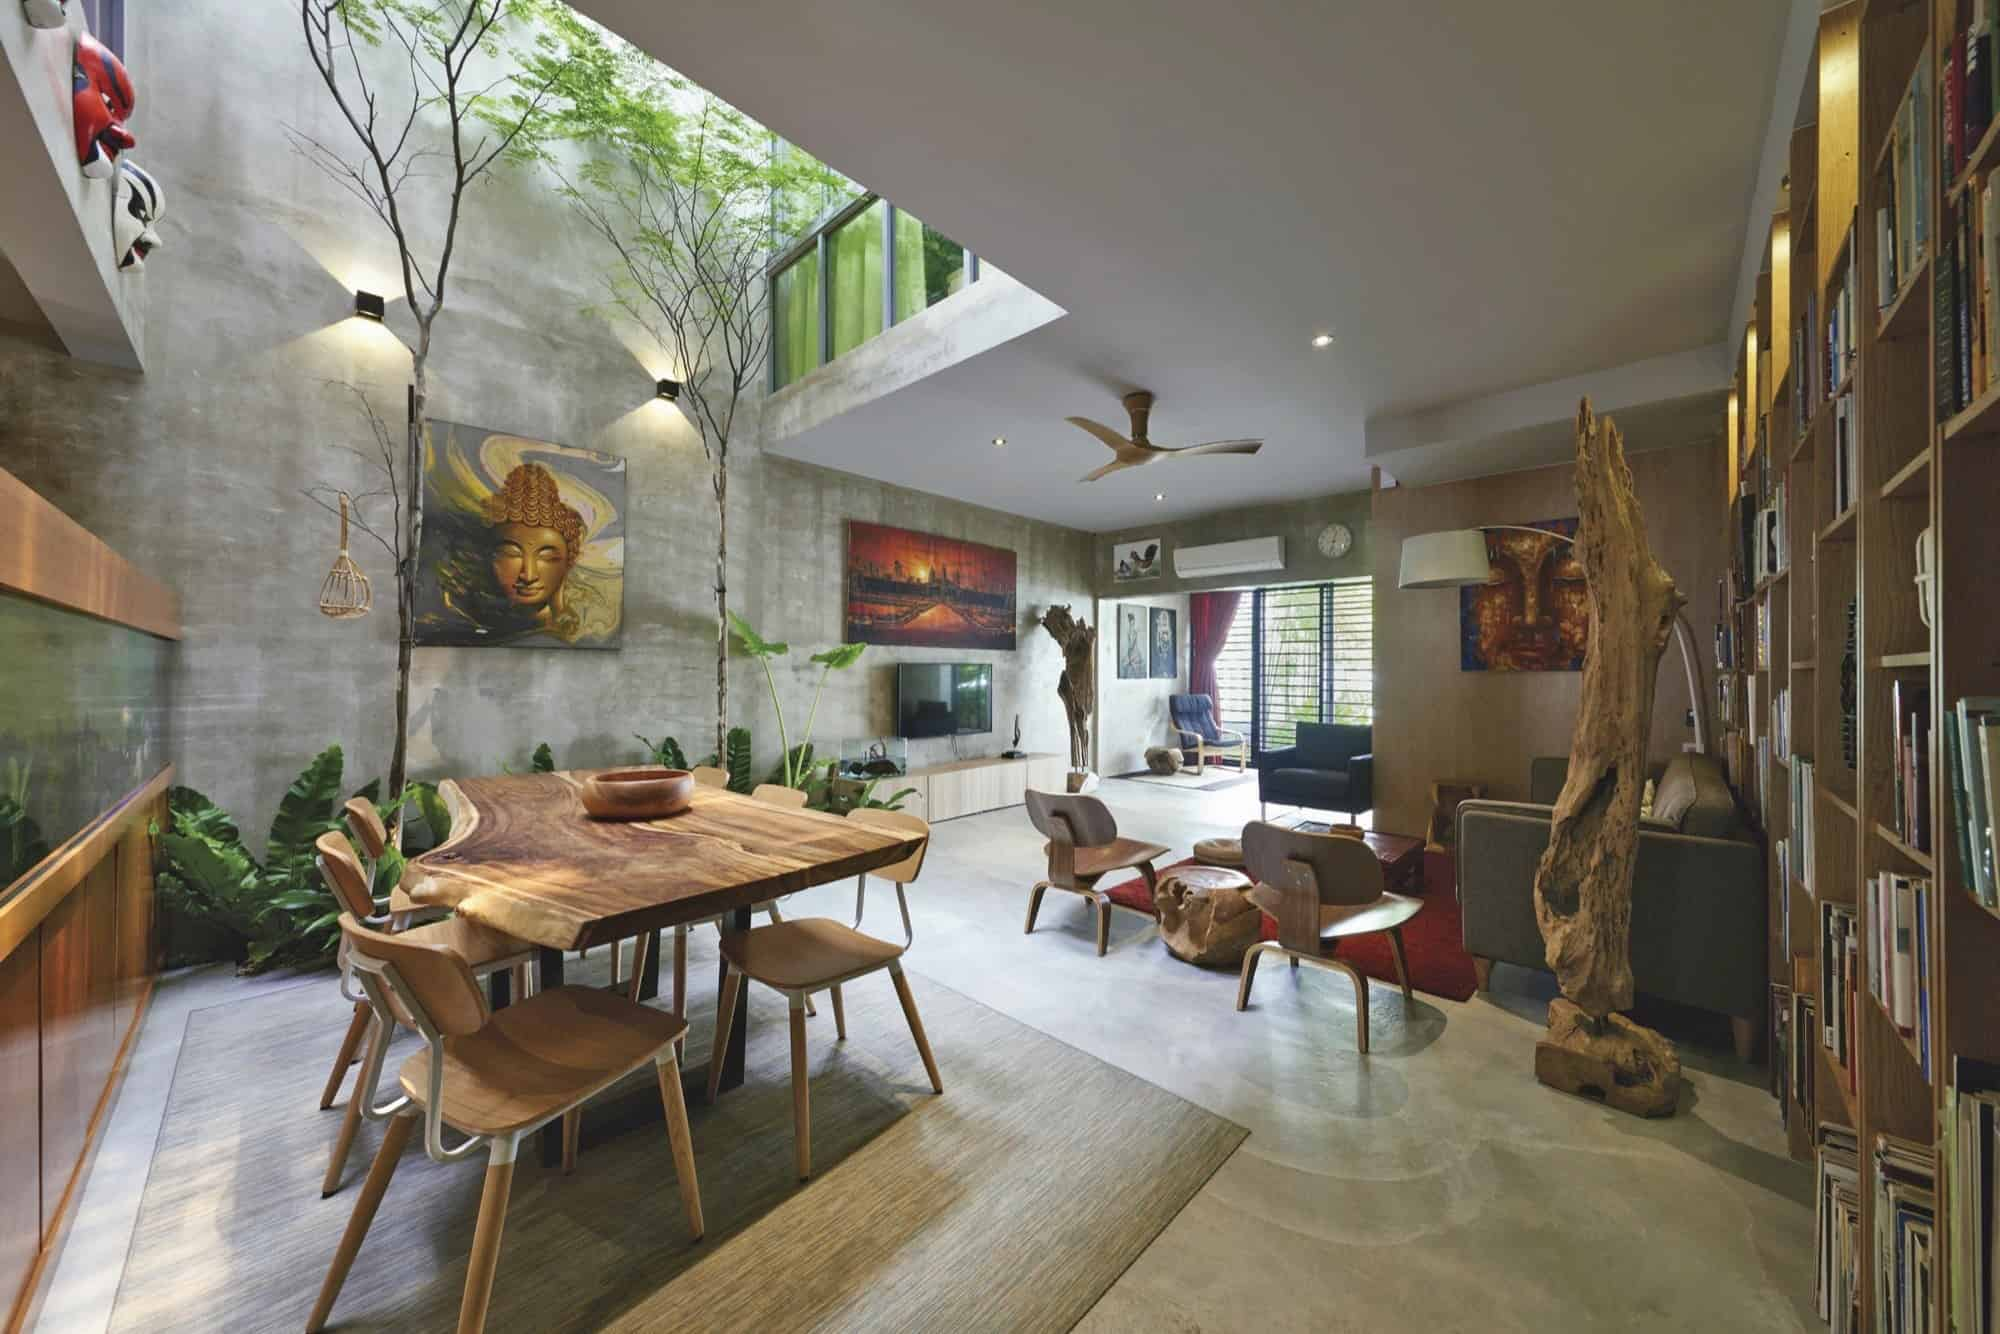 Trees and shrubs create faux courtyard inside house Homes with inner courtyards